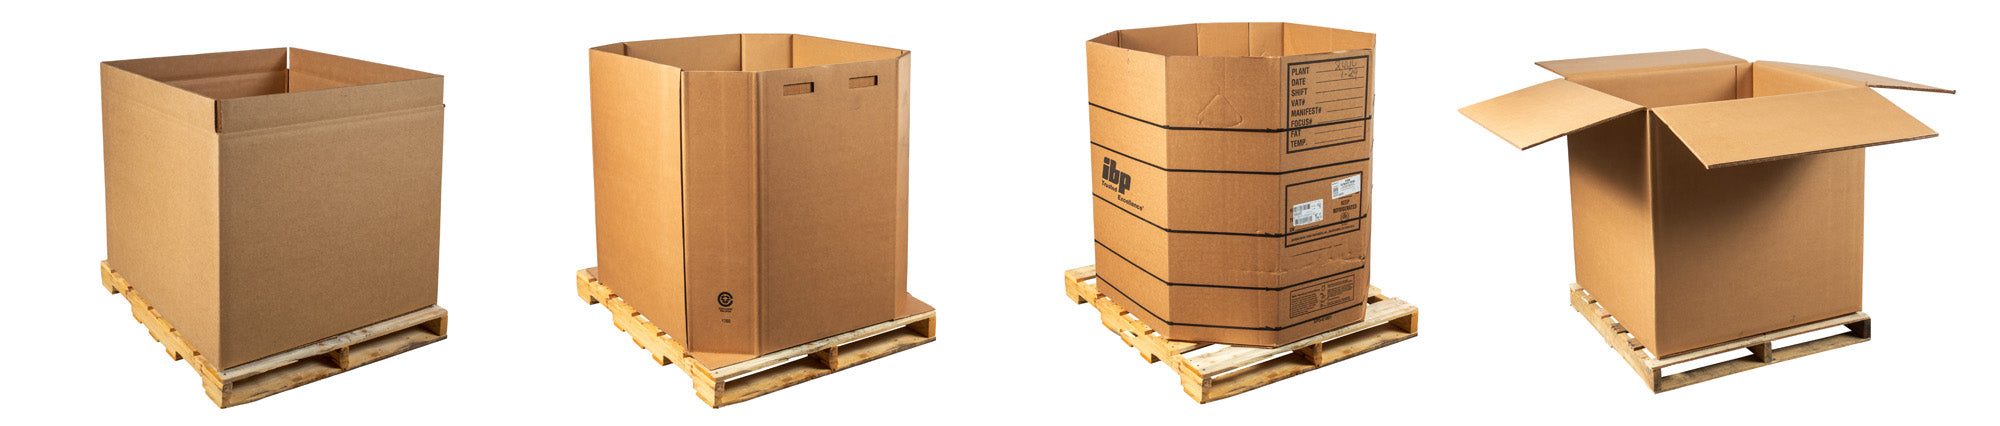 Gaylord Boxes - Made in the USA, Shipped Direct